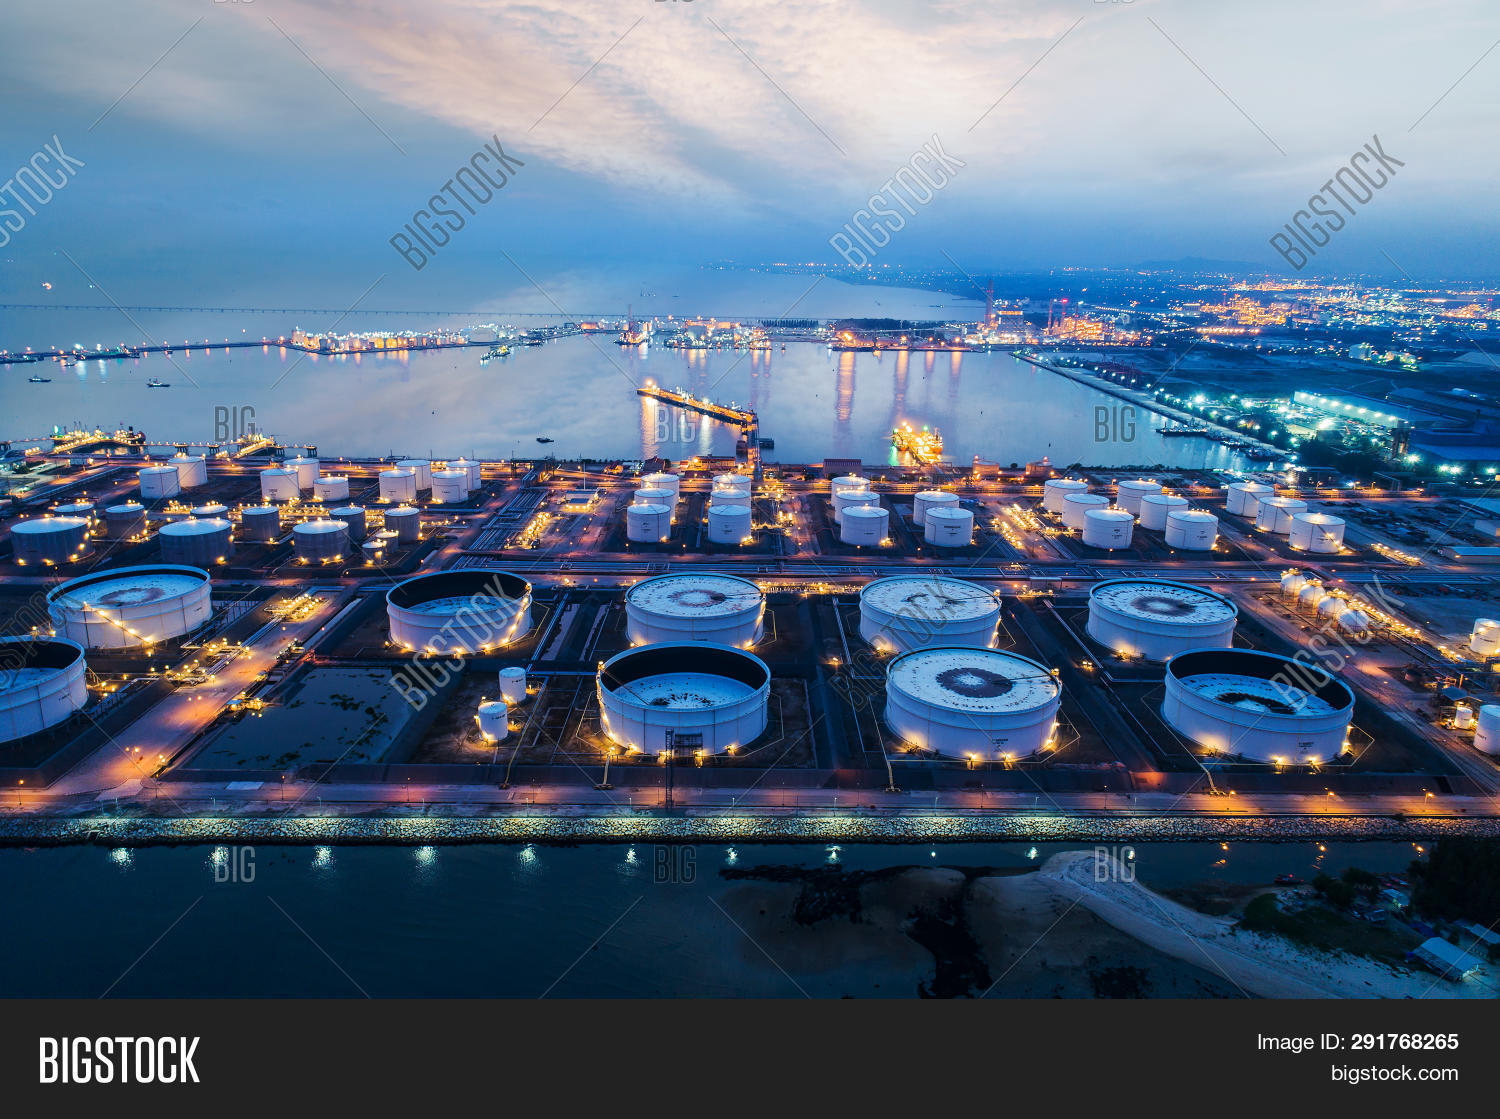 aerial,background,blue,business,chemical,chemistry,chimney,construction,container,crude,depot,energy,engineering,environment,factory,farm,fuel,gas,gasoline,global,industrial,industry,liquid,manufacturing,metal,night,oil,petrochemical,petrol,petroleum,pipe,pipeline,plant,pollution,port,power,production,refinery,ship,steel,storage,tank,tanker,technology,terminal,tower,transport,transportation,view,white